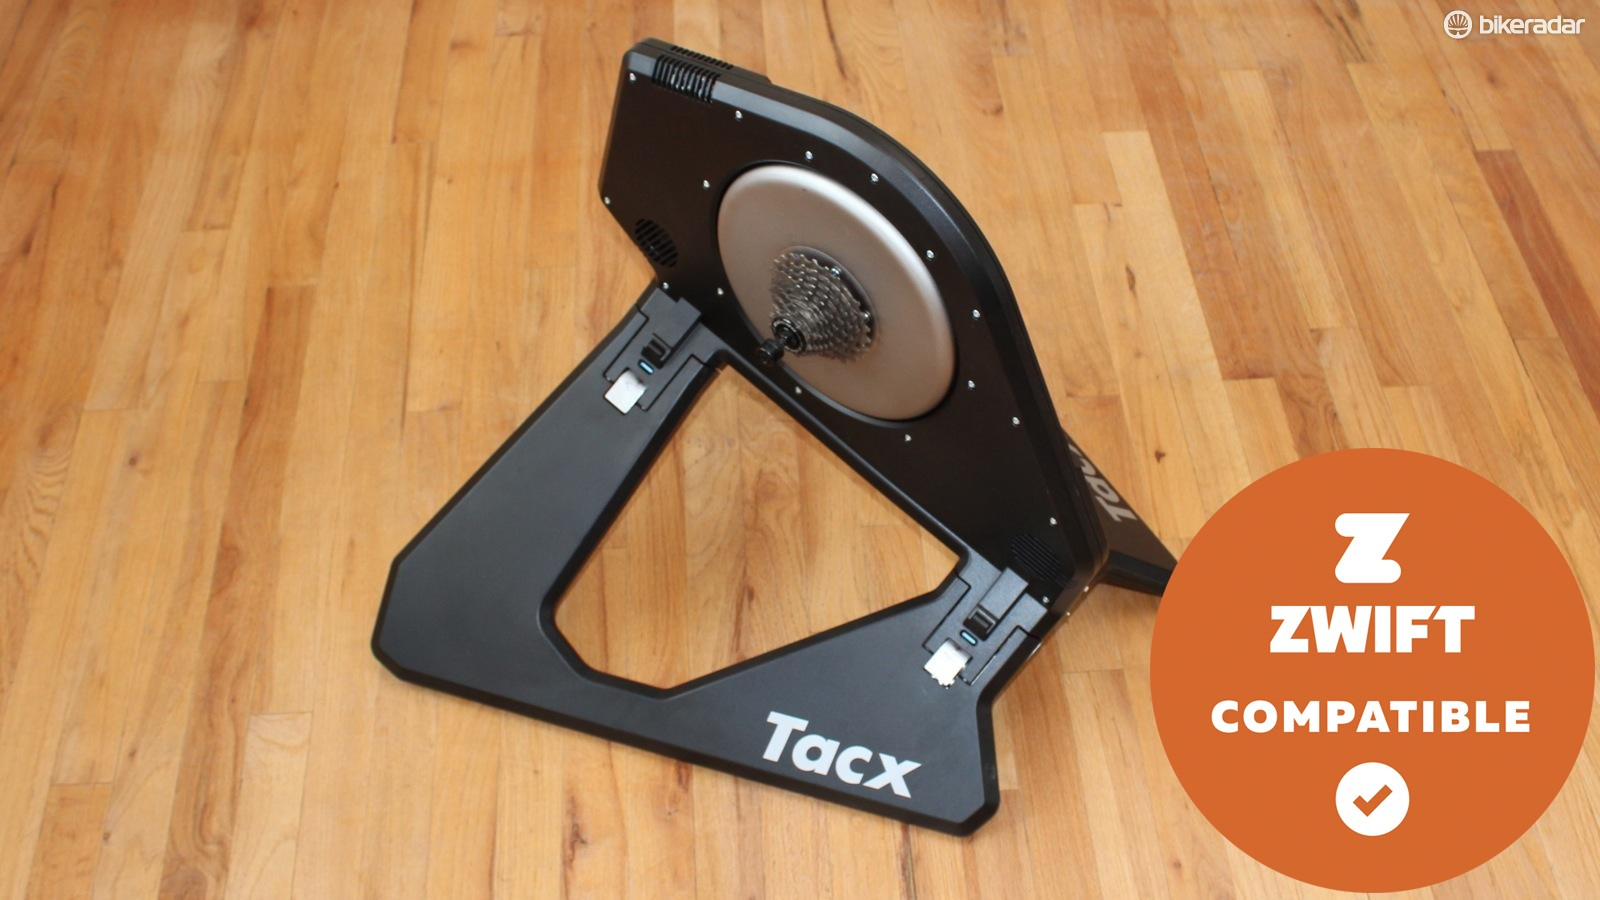 The Tacx Neo provides a smooth, engaging ride